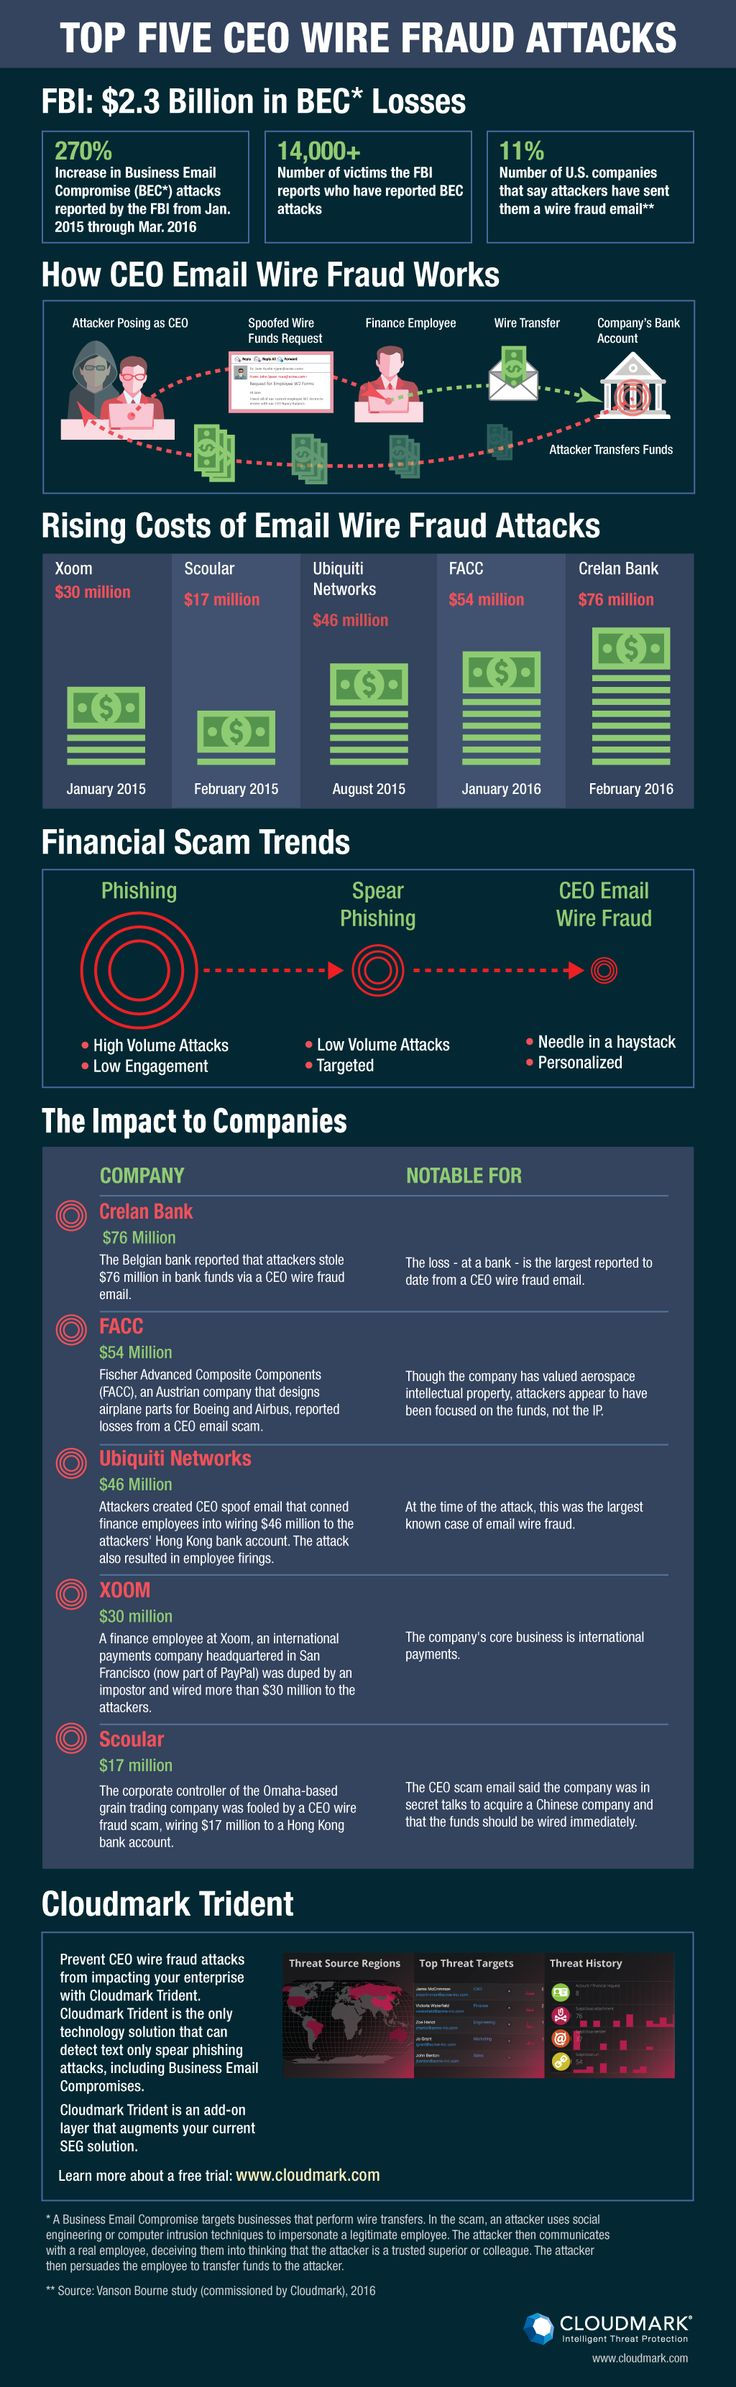 W2 Spear Phishing Attacks Are On The Rise